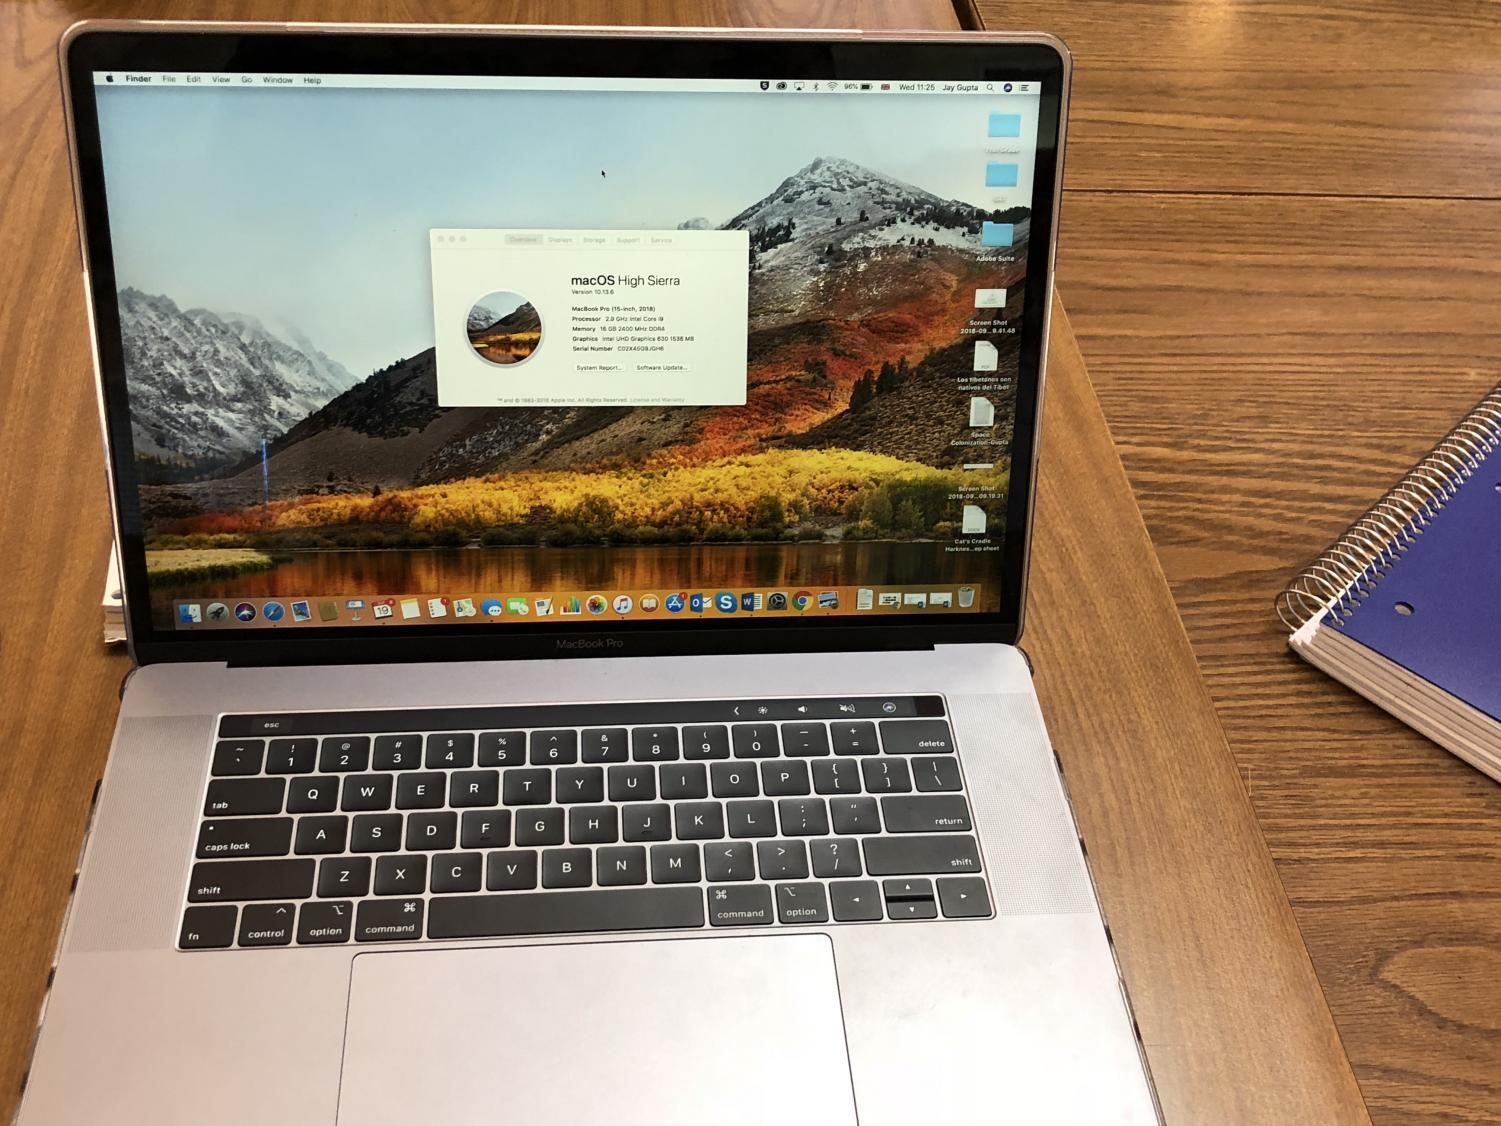 The+Mac+with+the+full+keyboard+and+touch+bar+showing+%0A